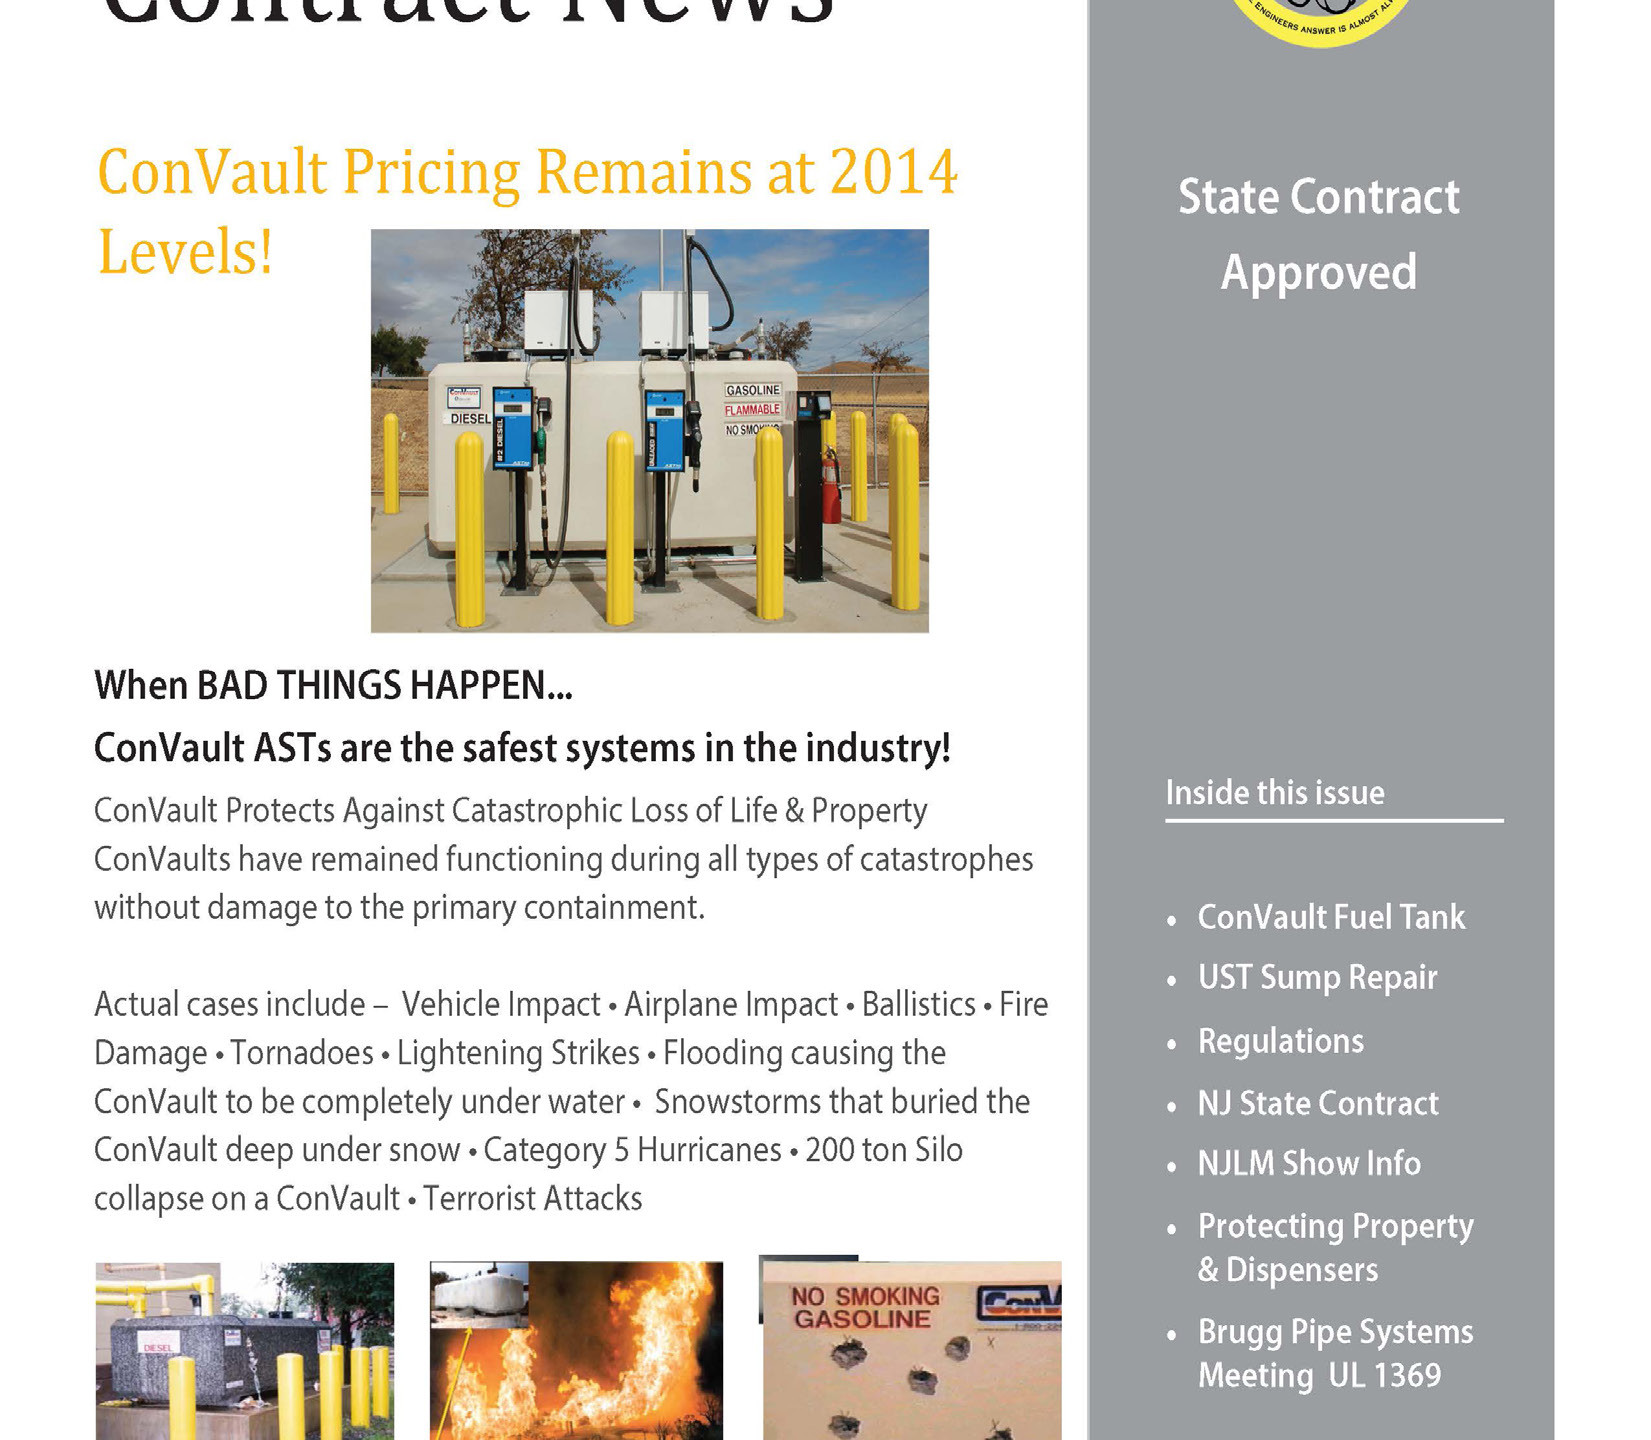 NJ State Fuel Tank Contract News